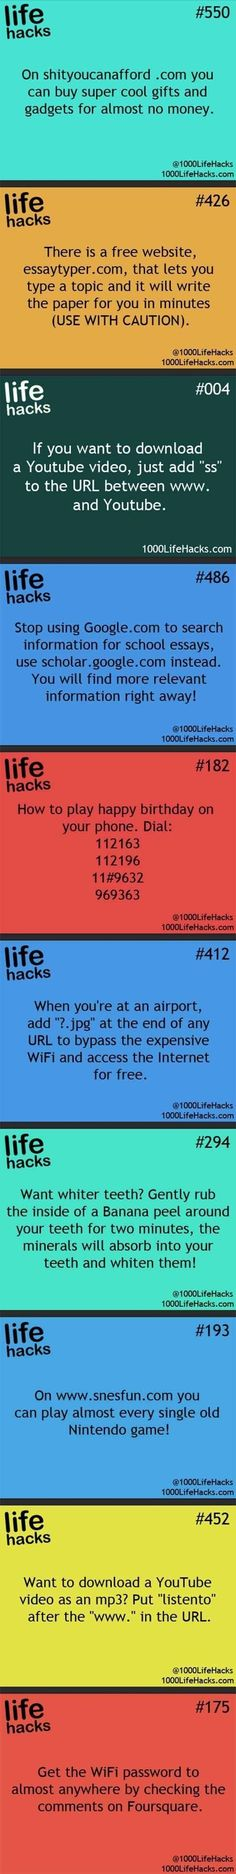 Photo Life Hacks - 20 life hacks really shouldnt try